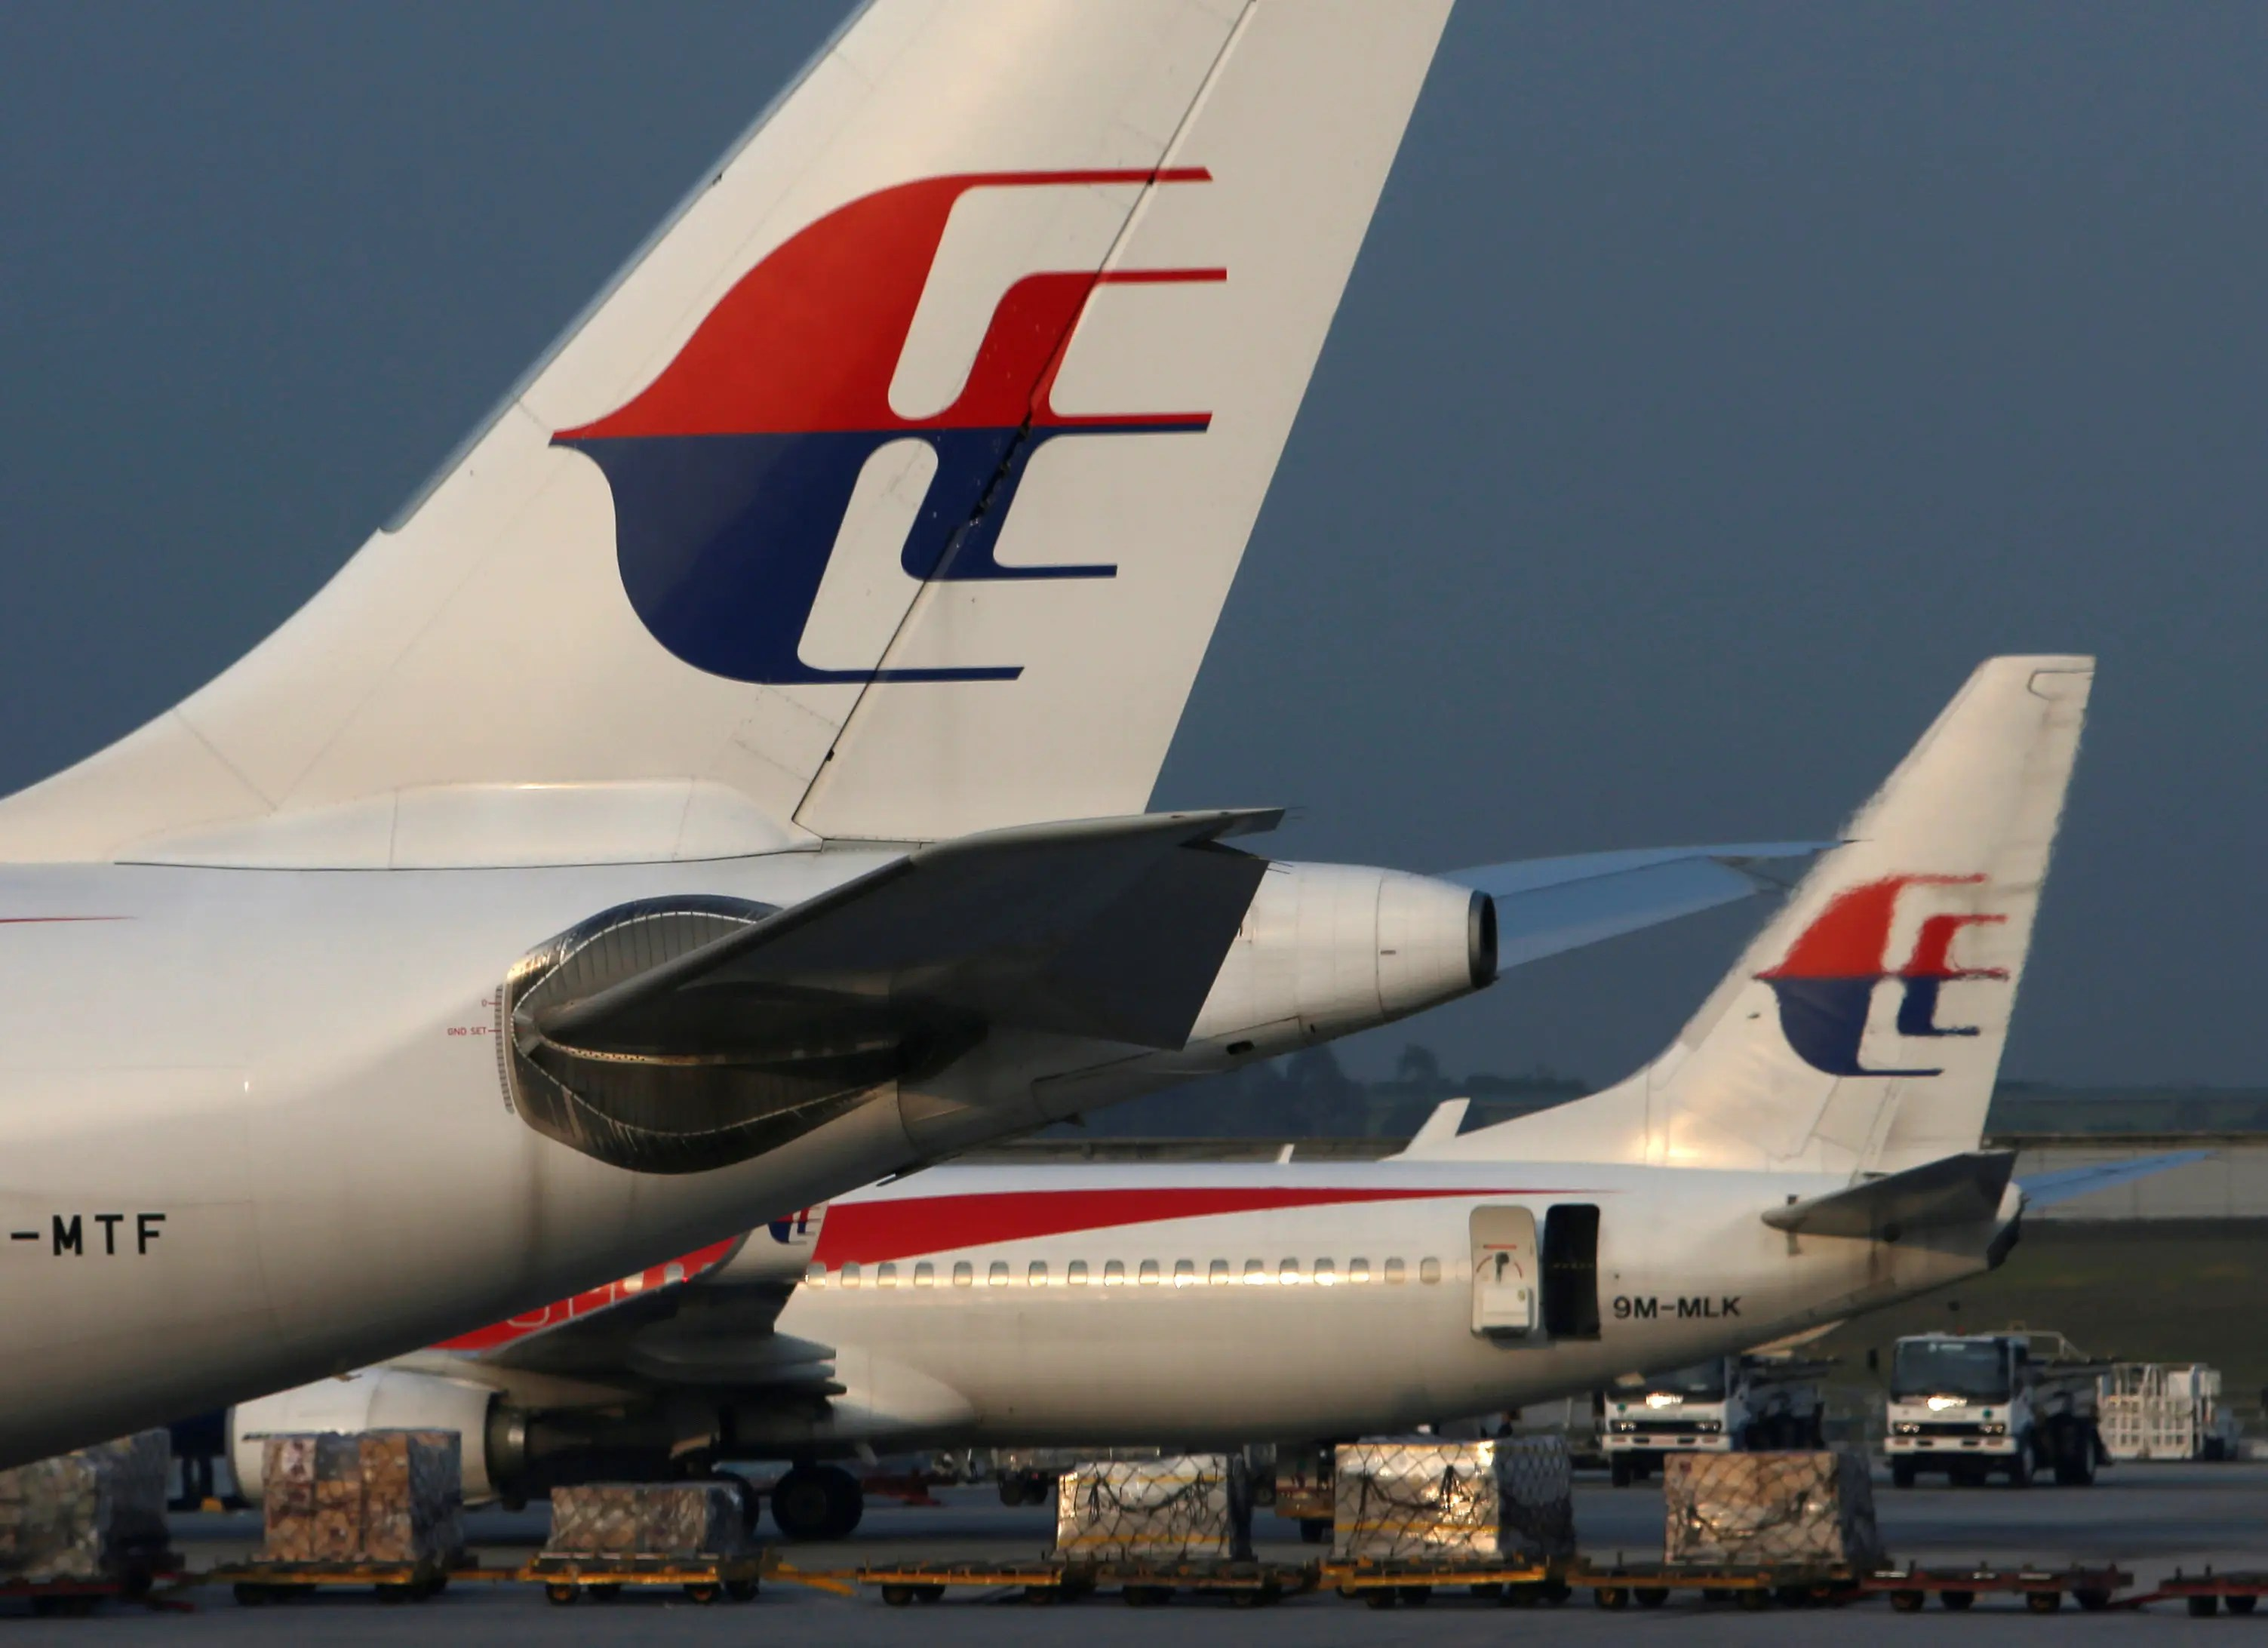 Malaysia Airlines plane diverted over disruptive passenger